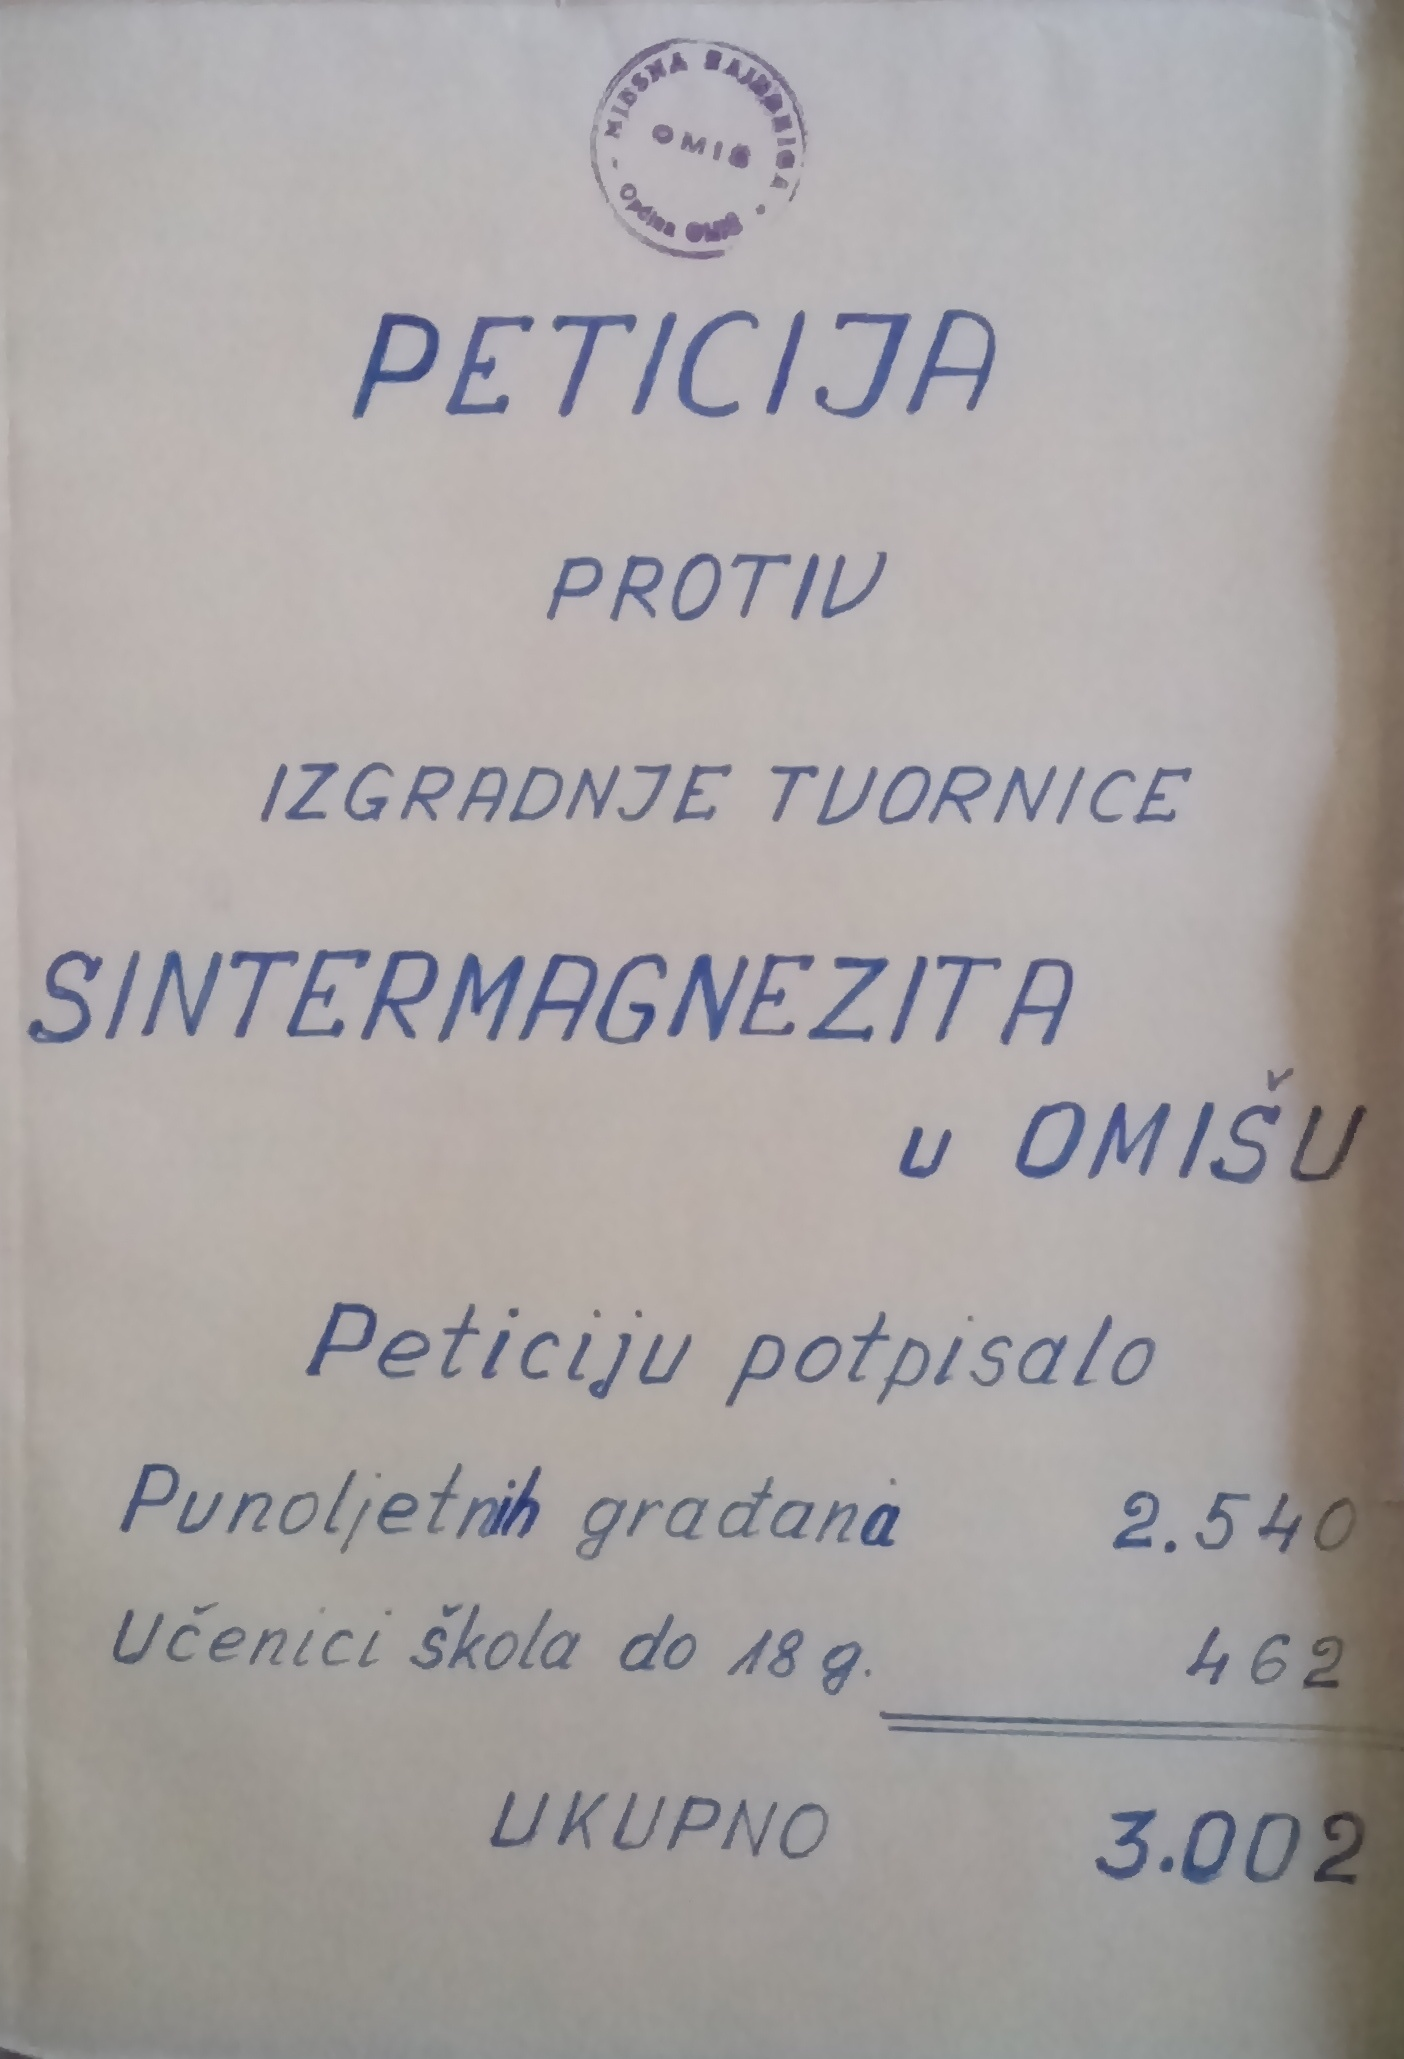 Petition letter against construction of a sintered magnesia factory in Omiš sent to the Parliament of Socialist Republic of Croatia. 12 April 1979. Archival document